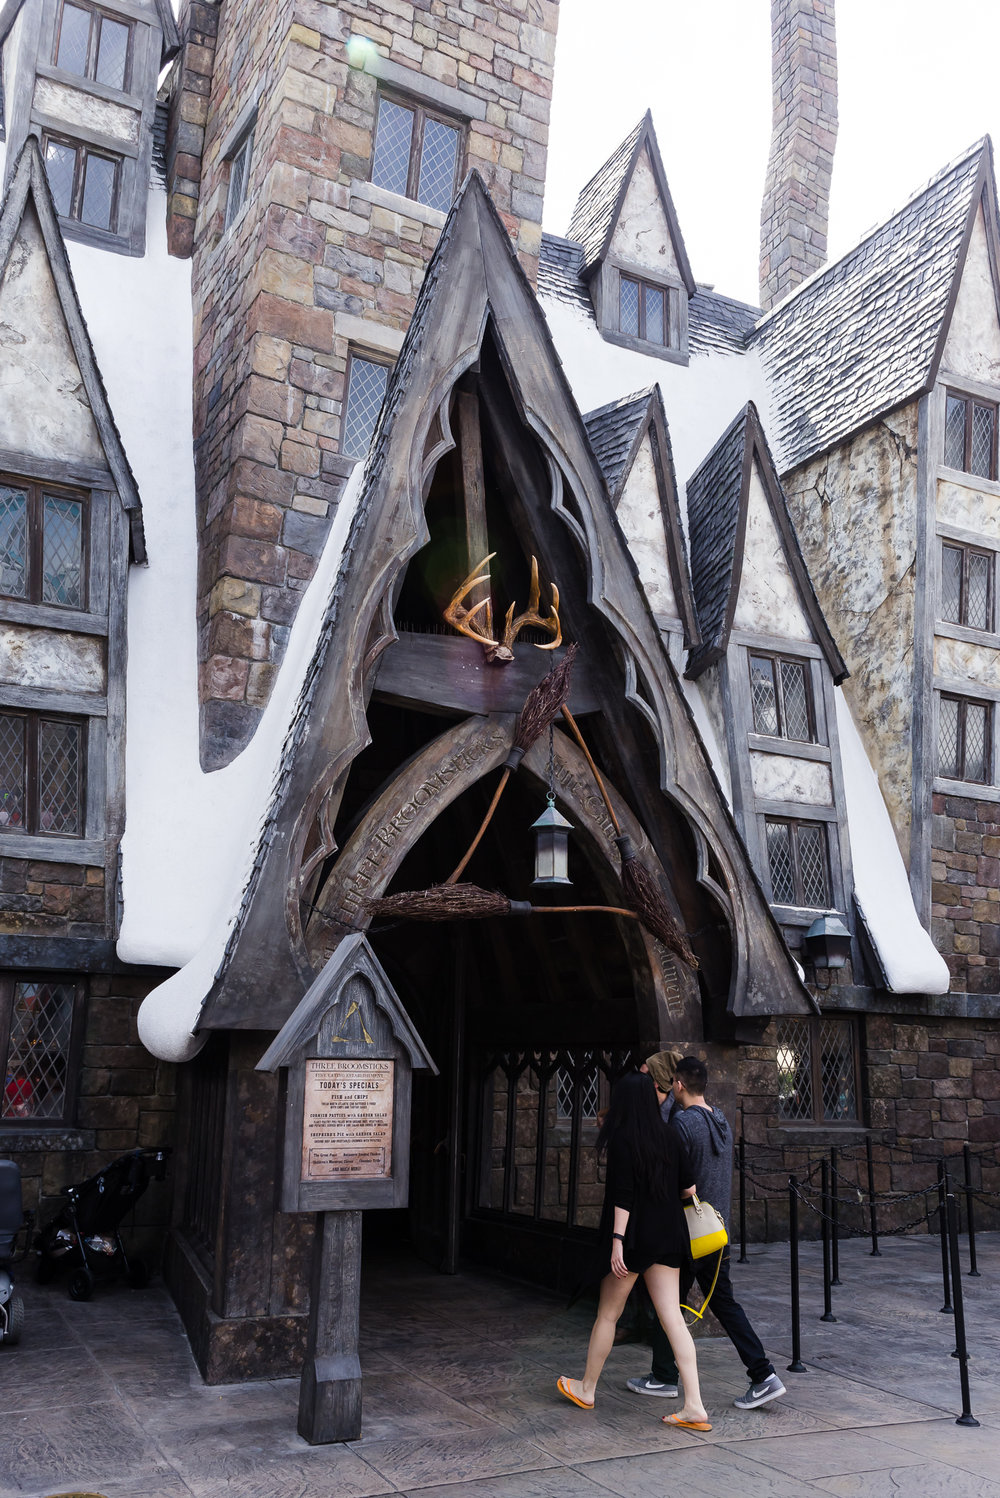 The Three Broomsticks. / 3/5/16 / Islands of Adventure / Orlando, FL